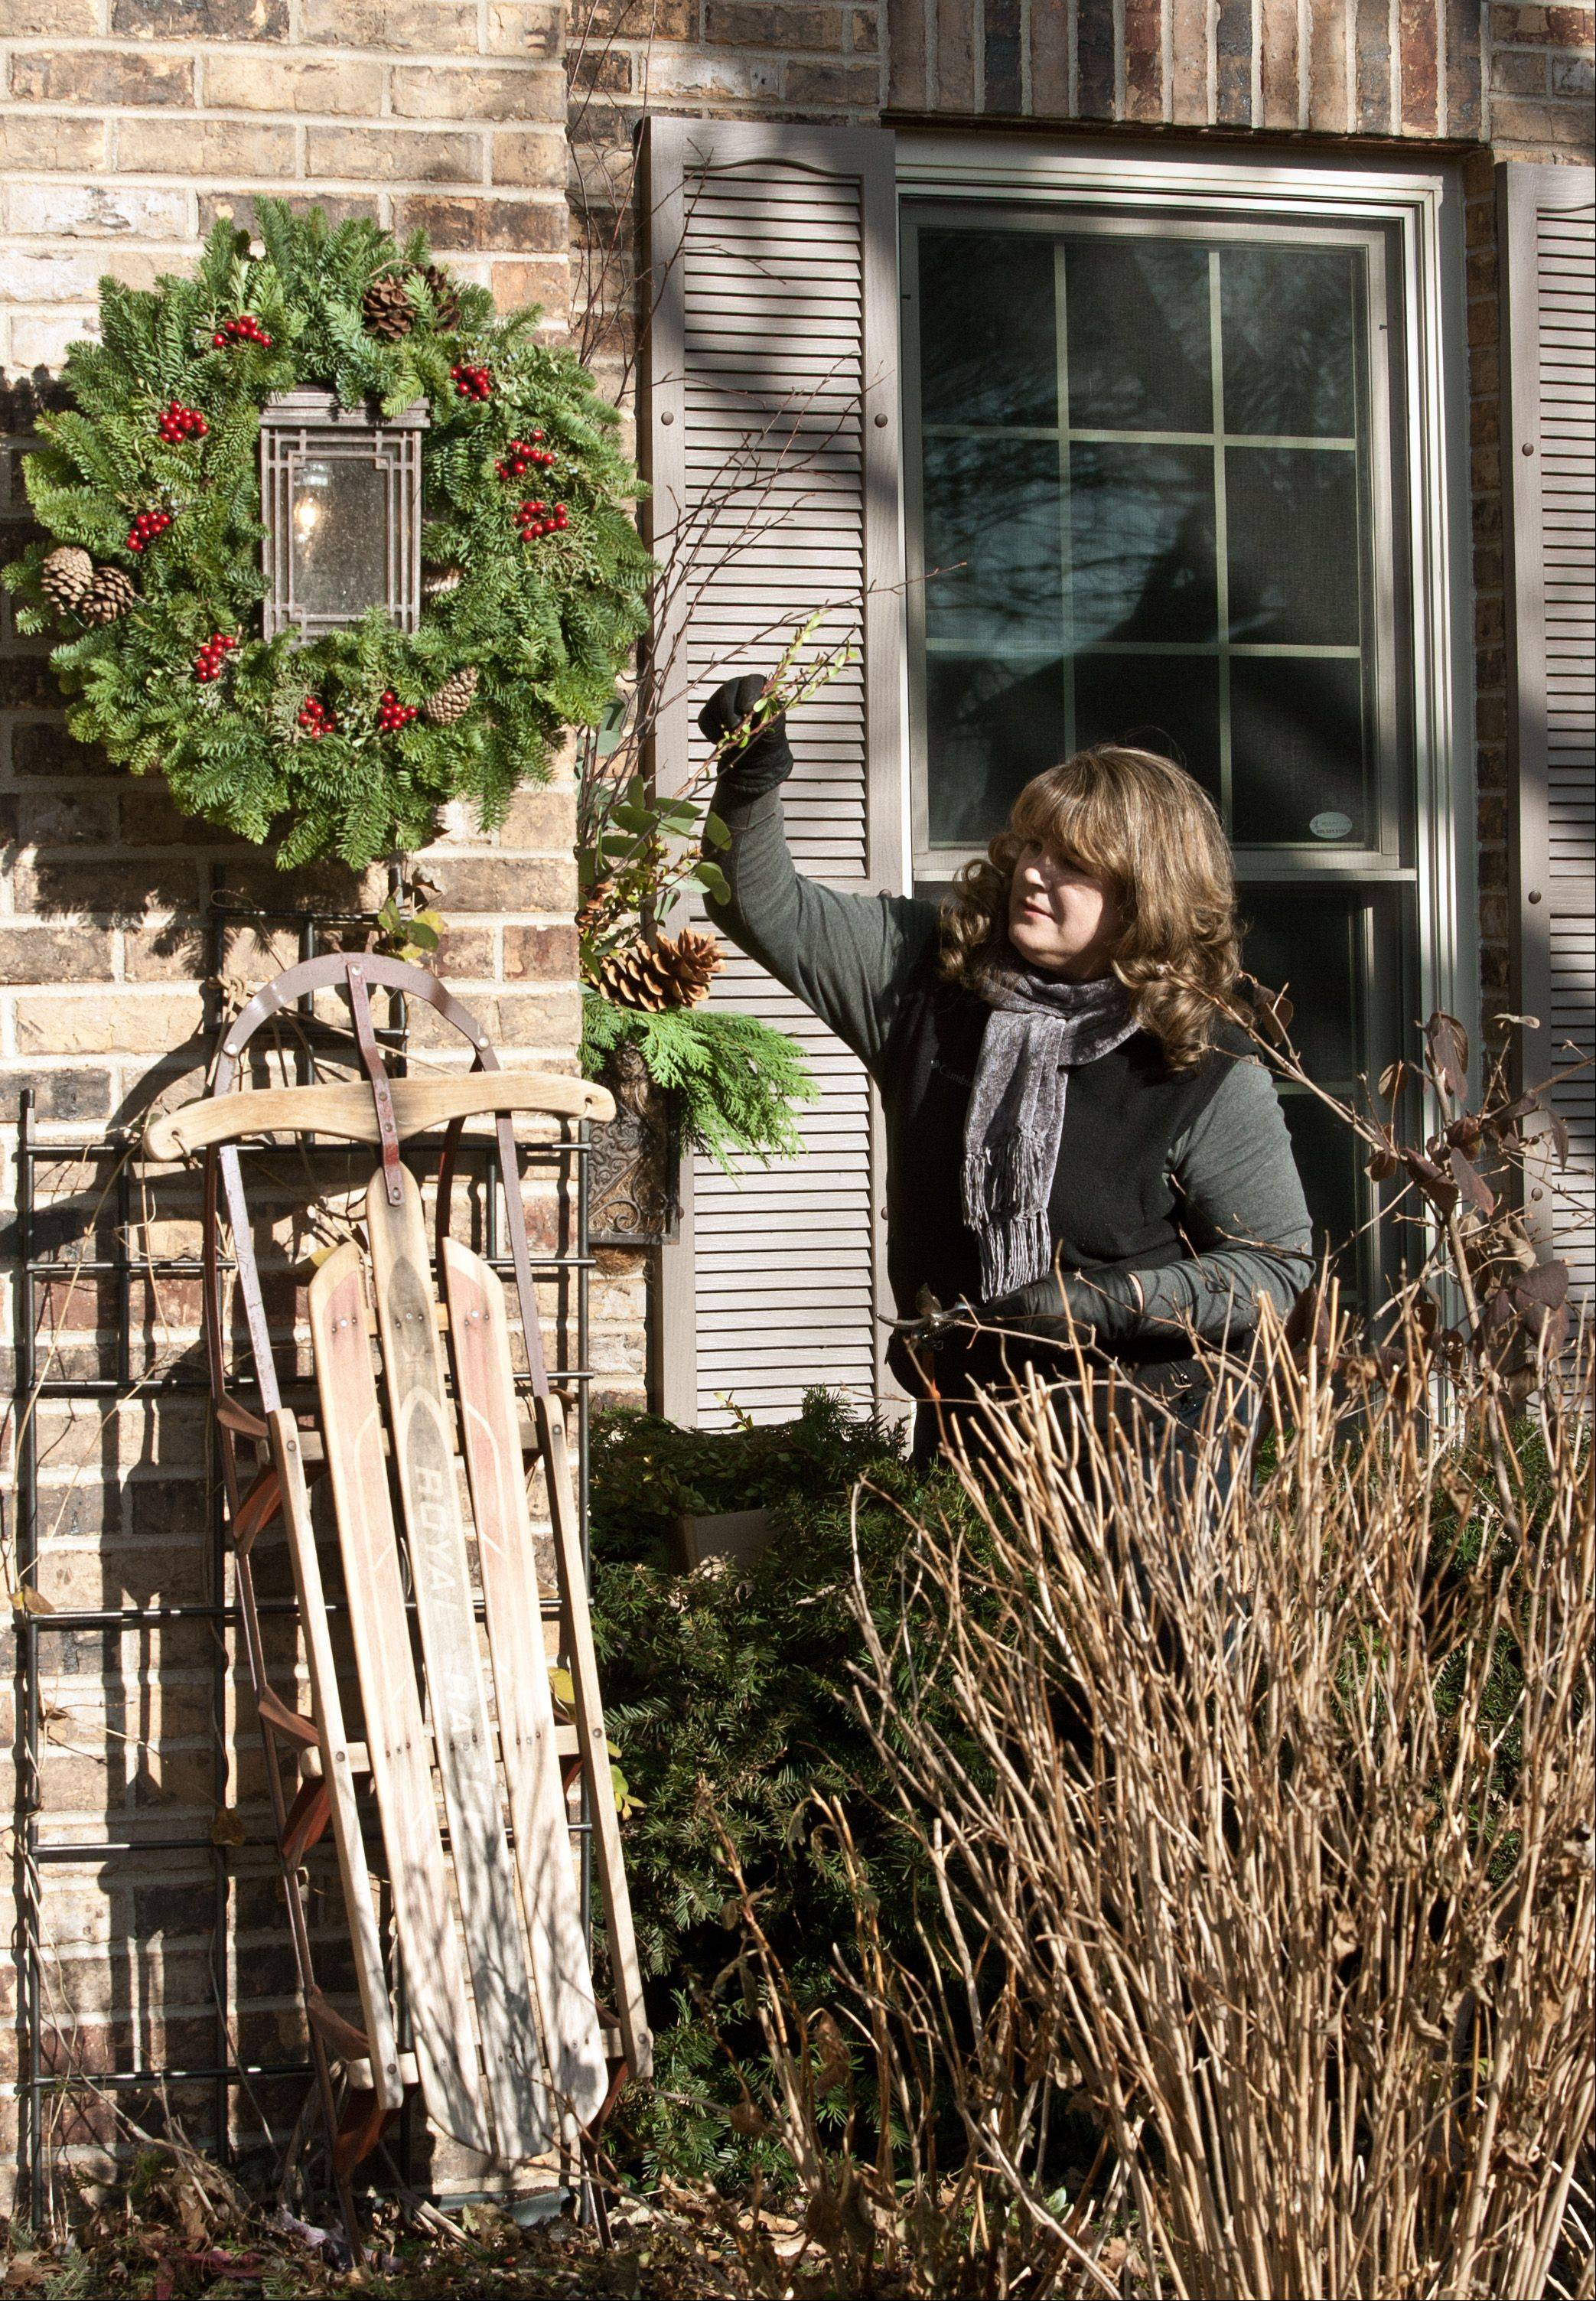 Laura Christensen, a Wheaton landscape architect, has completely transformed her yard and shares her techniques with garden clubs in the area.